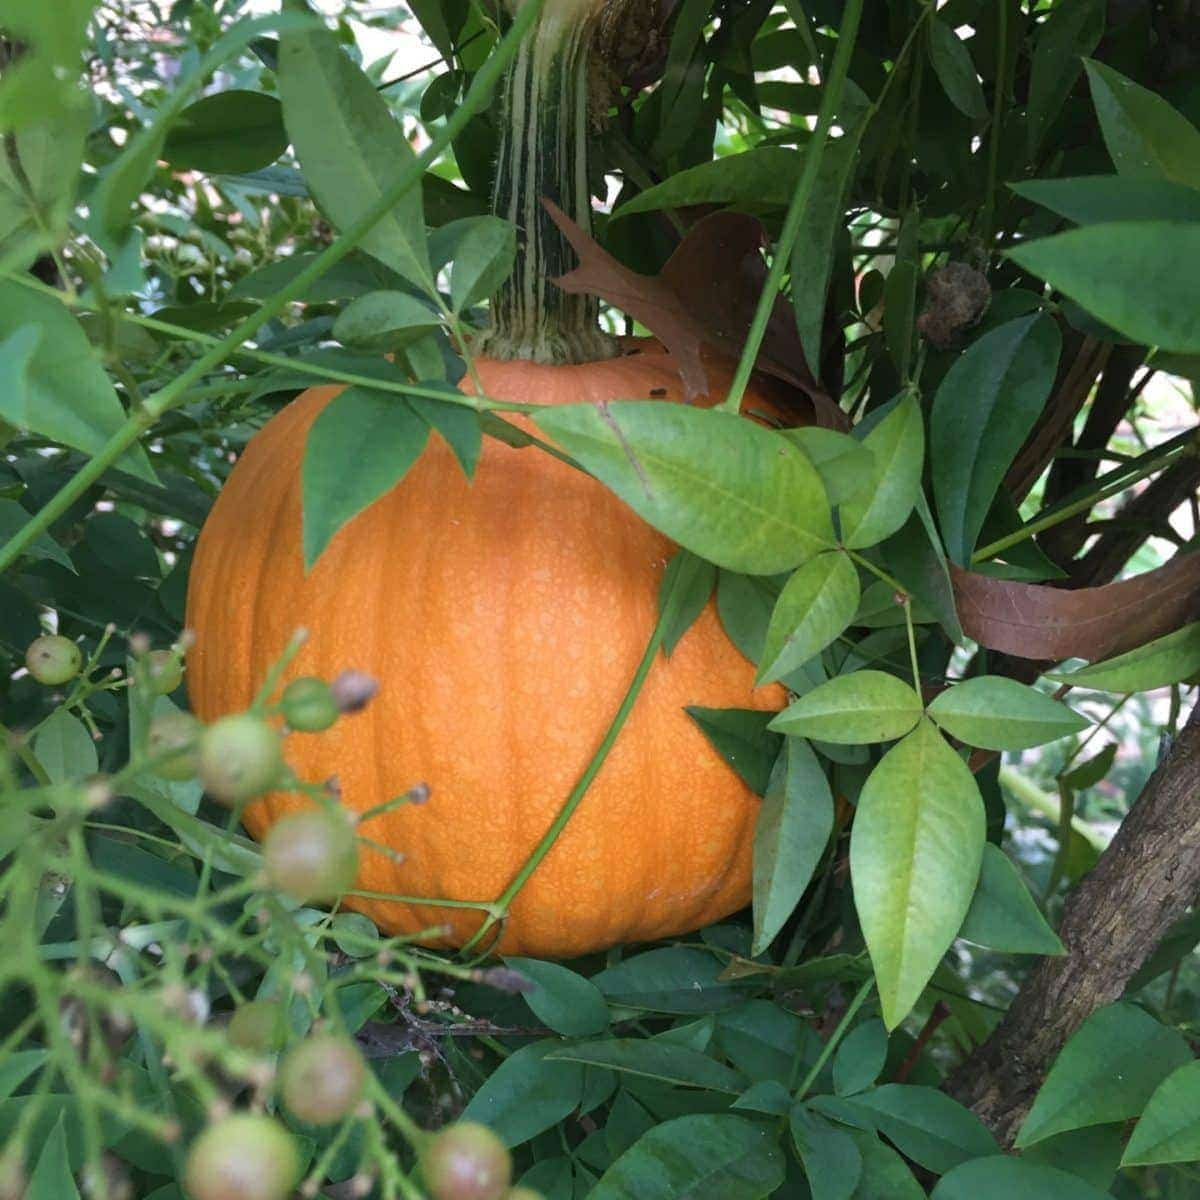 Pumpkin Hiding in Bushes